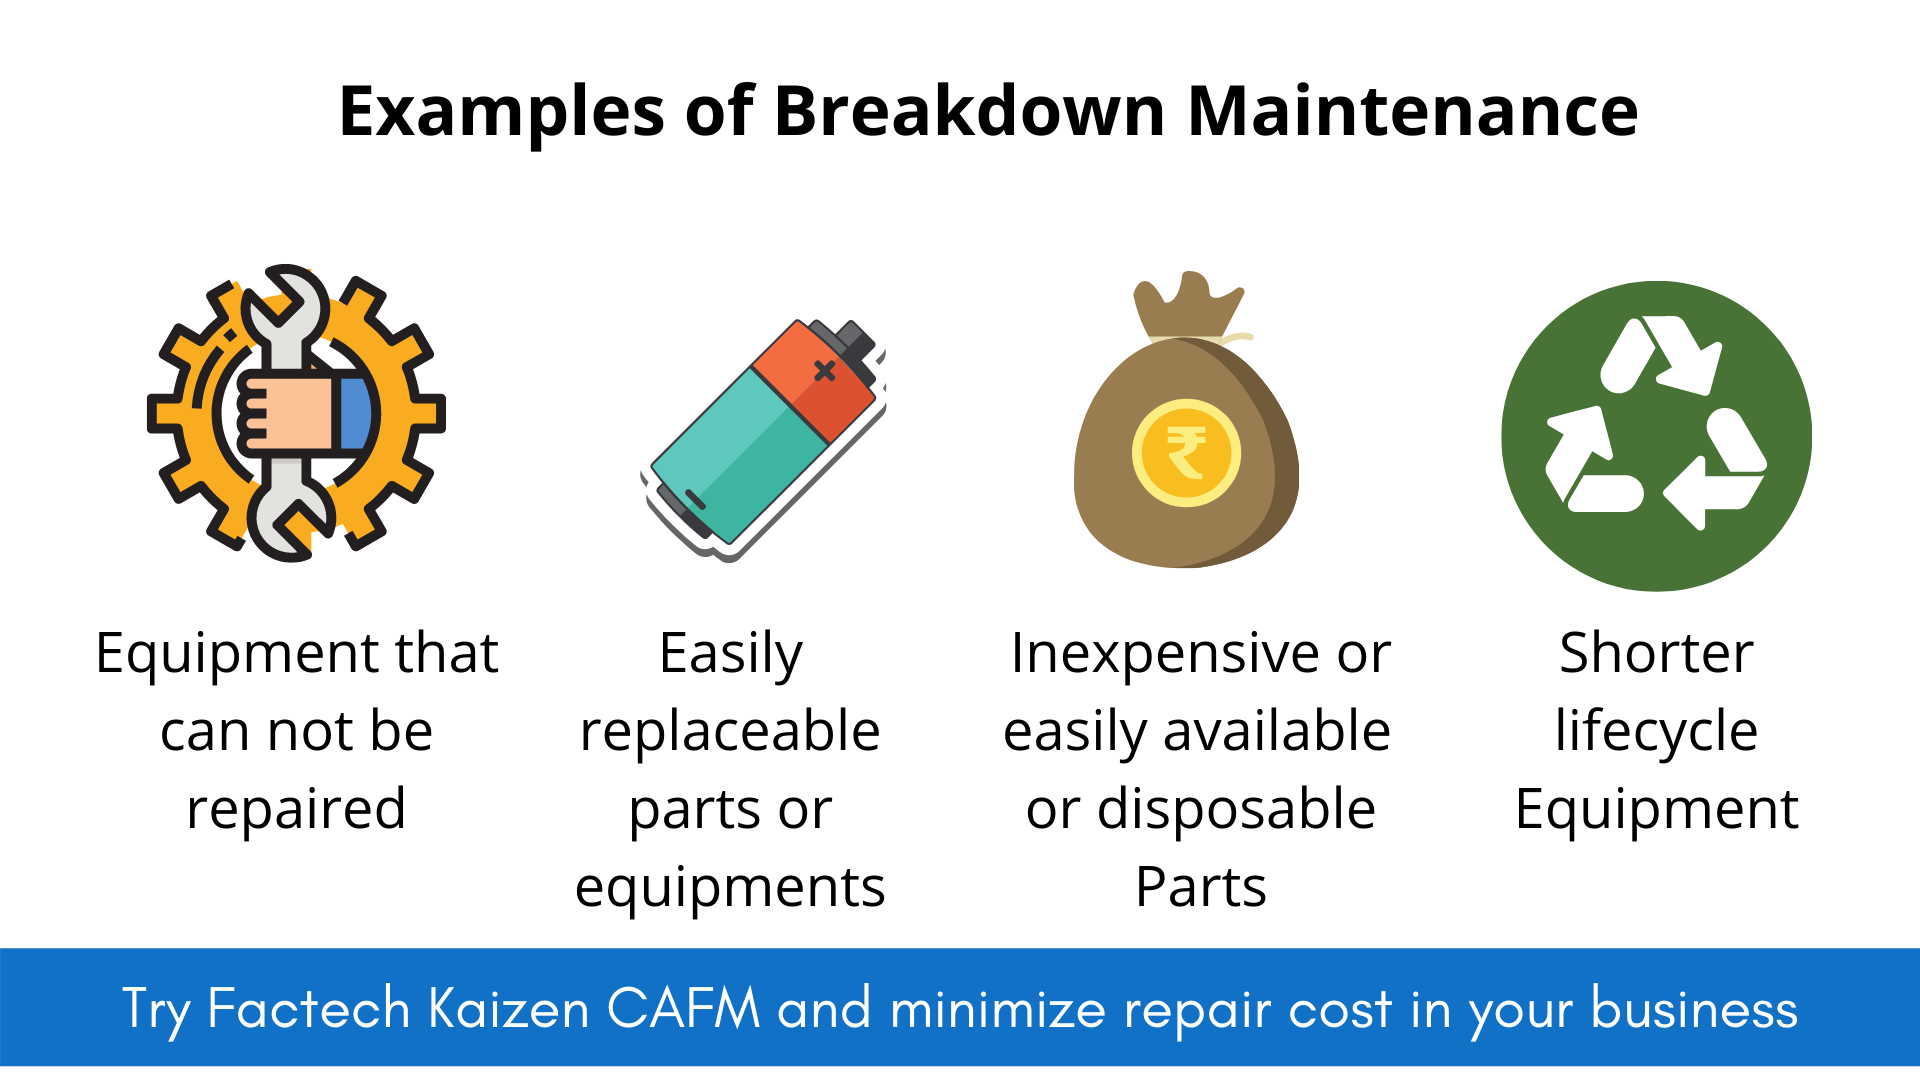 what are examples of breakdown maintenance